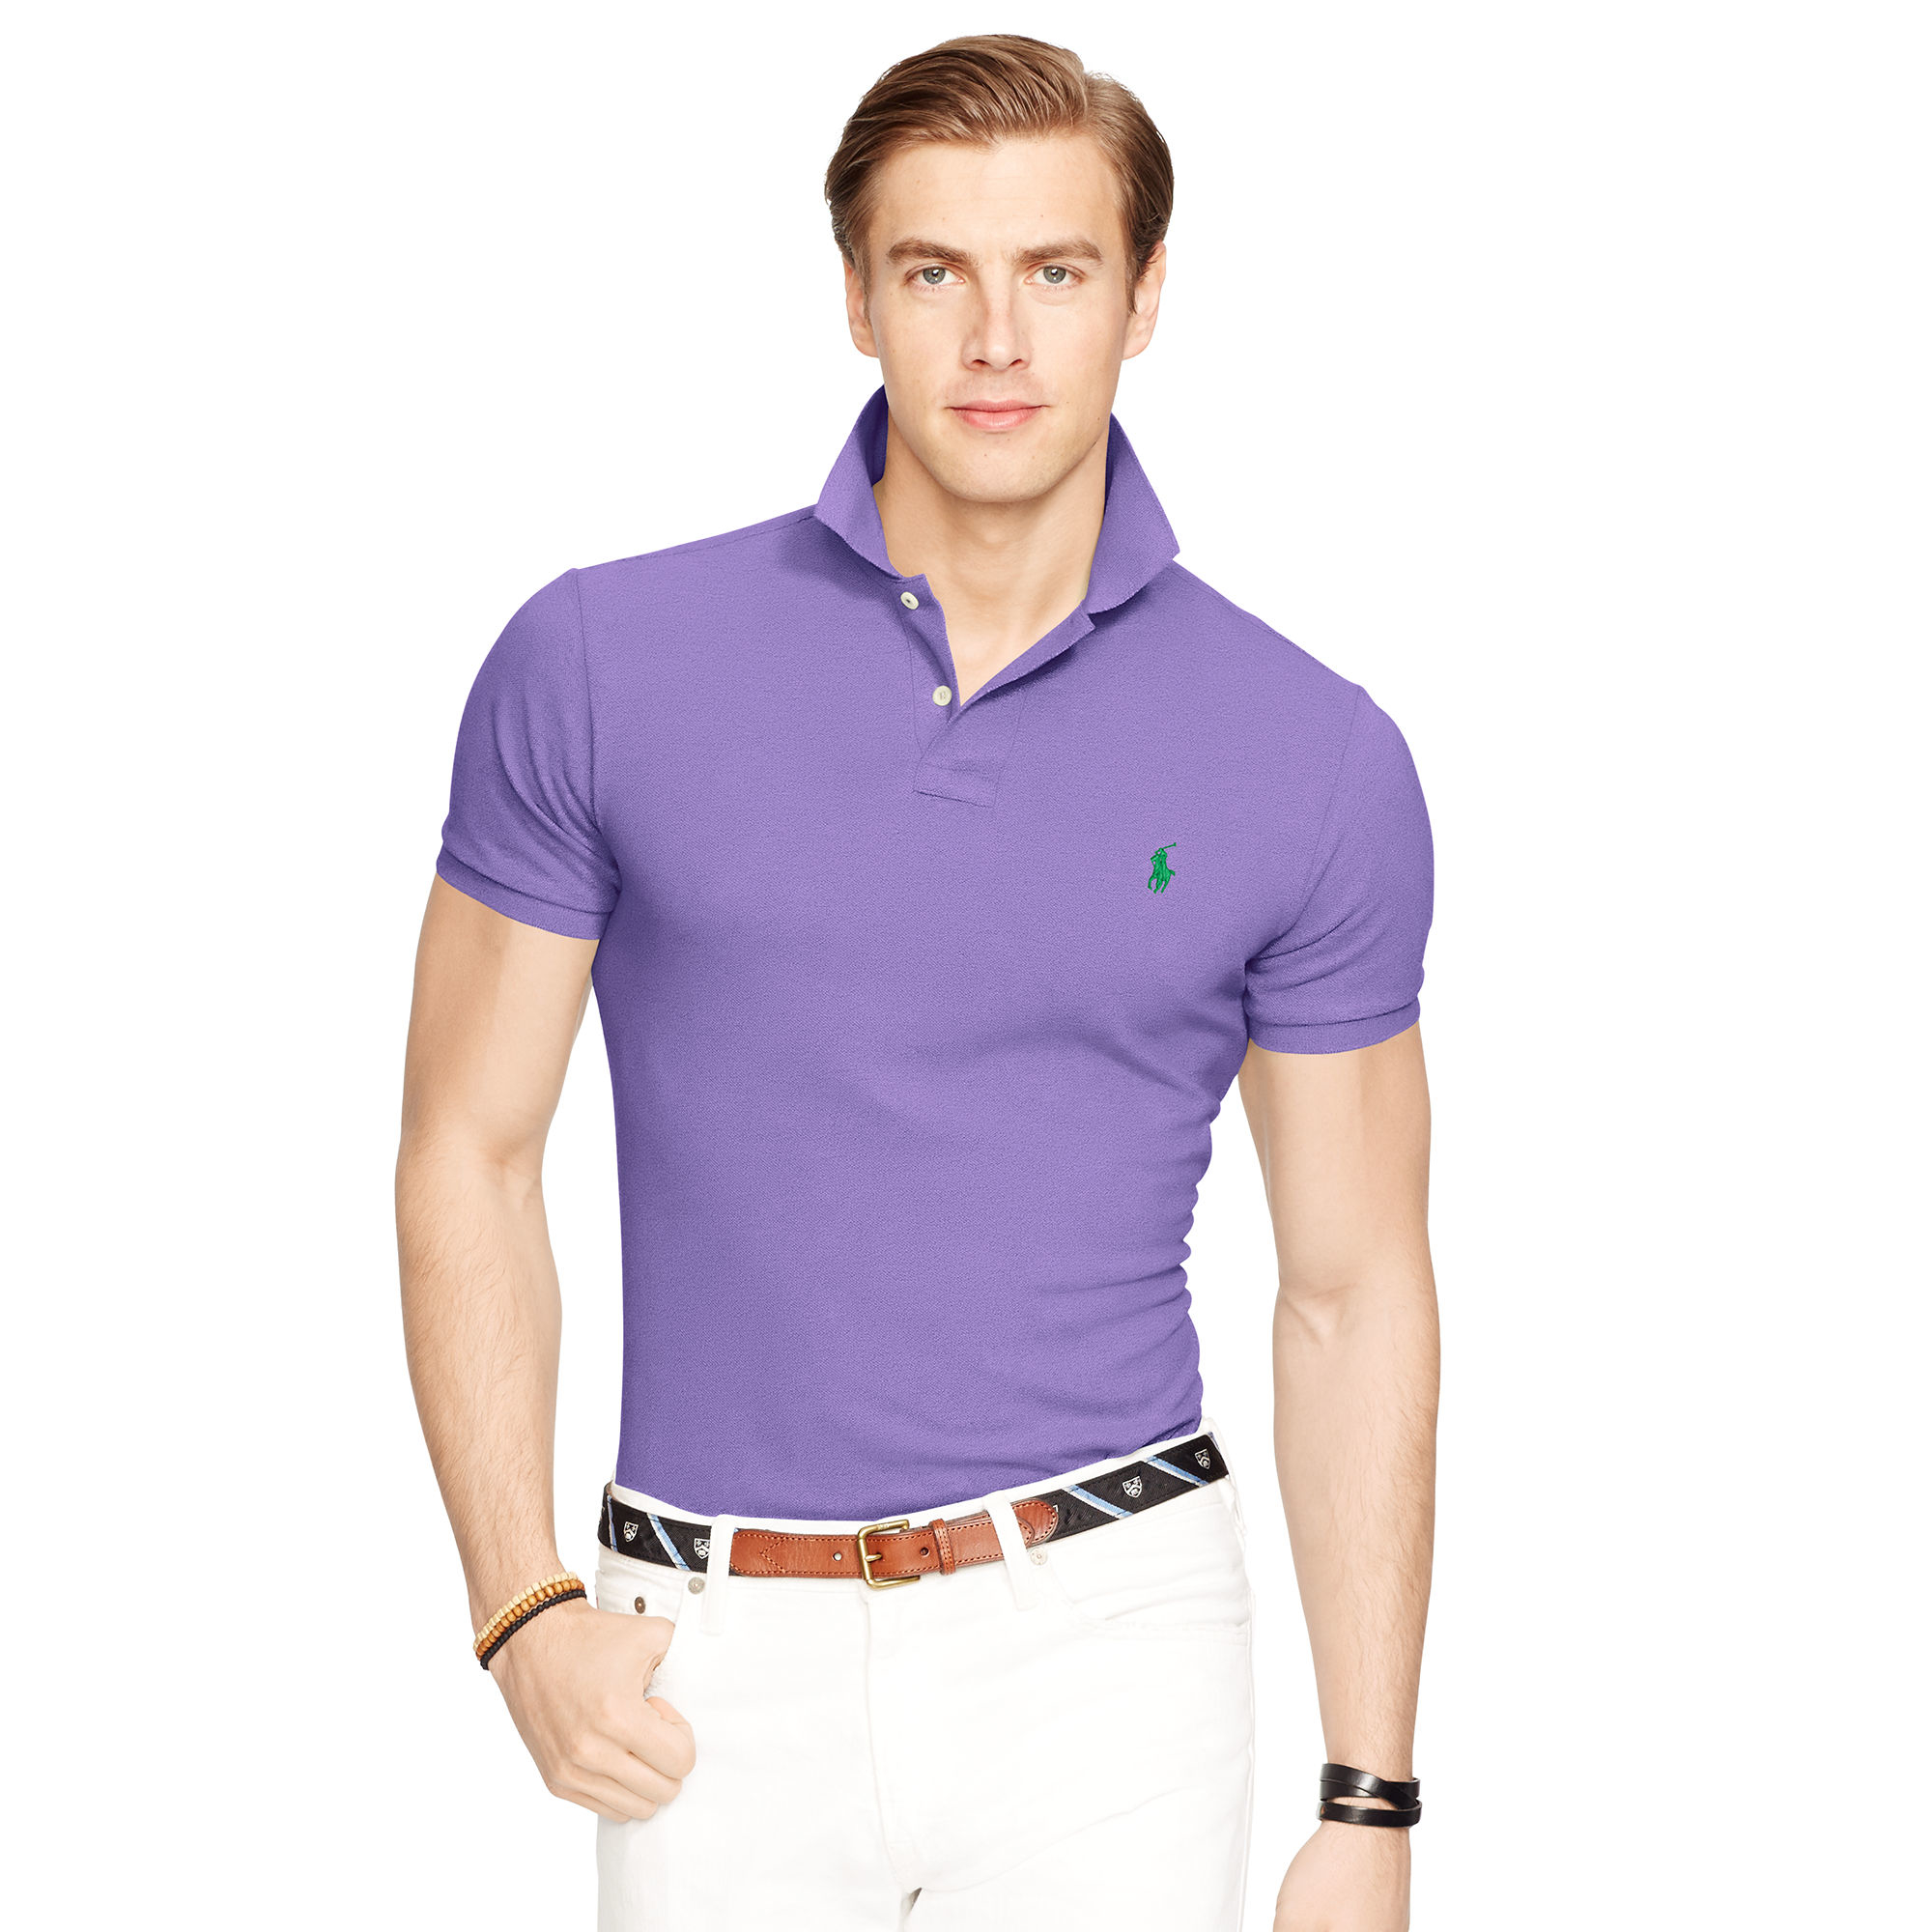 Lyst polo ralph lauren slim fit mesh polo shirt in Man in polo shirt